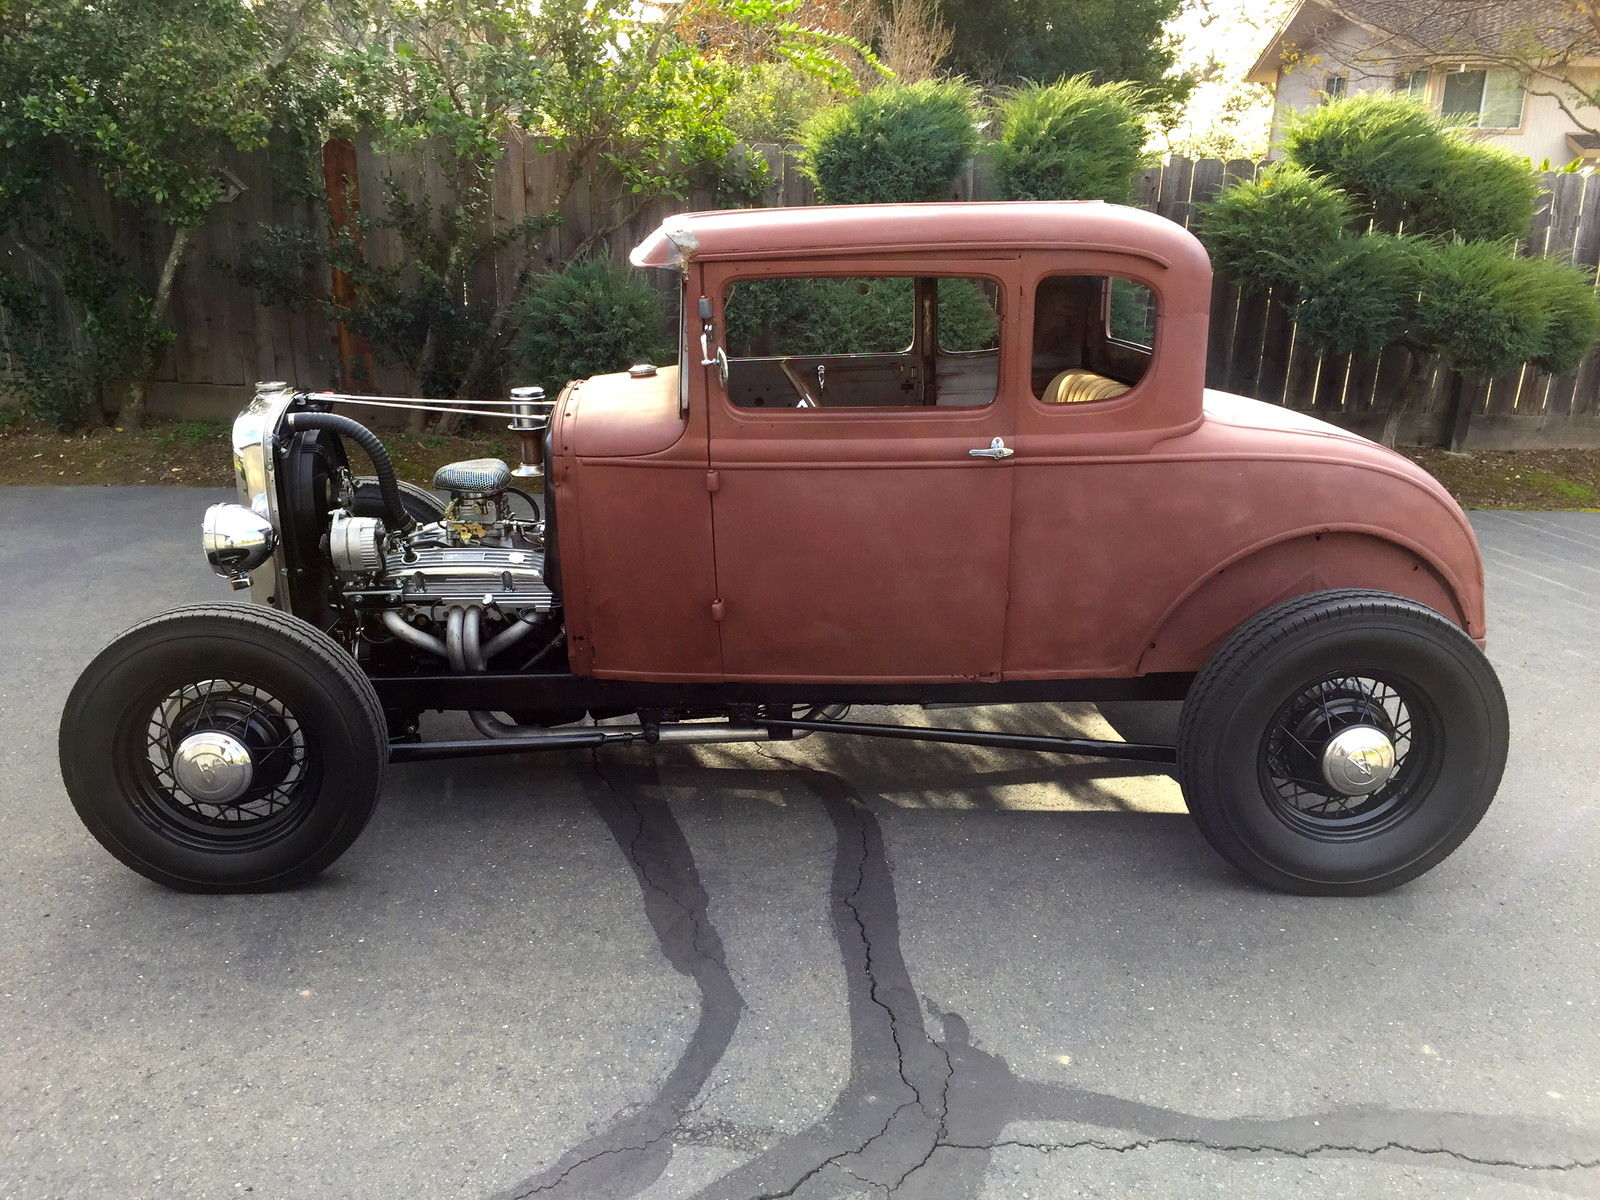 1931 ford model a coupe hot rod v8 california car 1928 1929 1930 1931 scta 1 locate ford truck by vin chevy vin number location get free image Ford Model T at soozxer.org